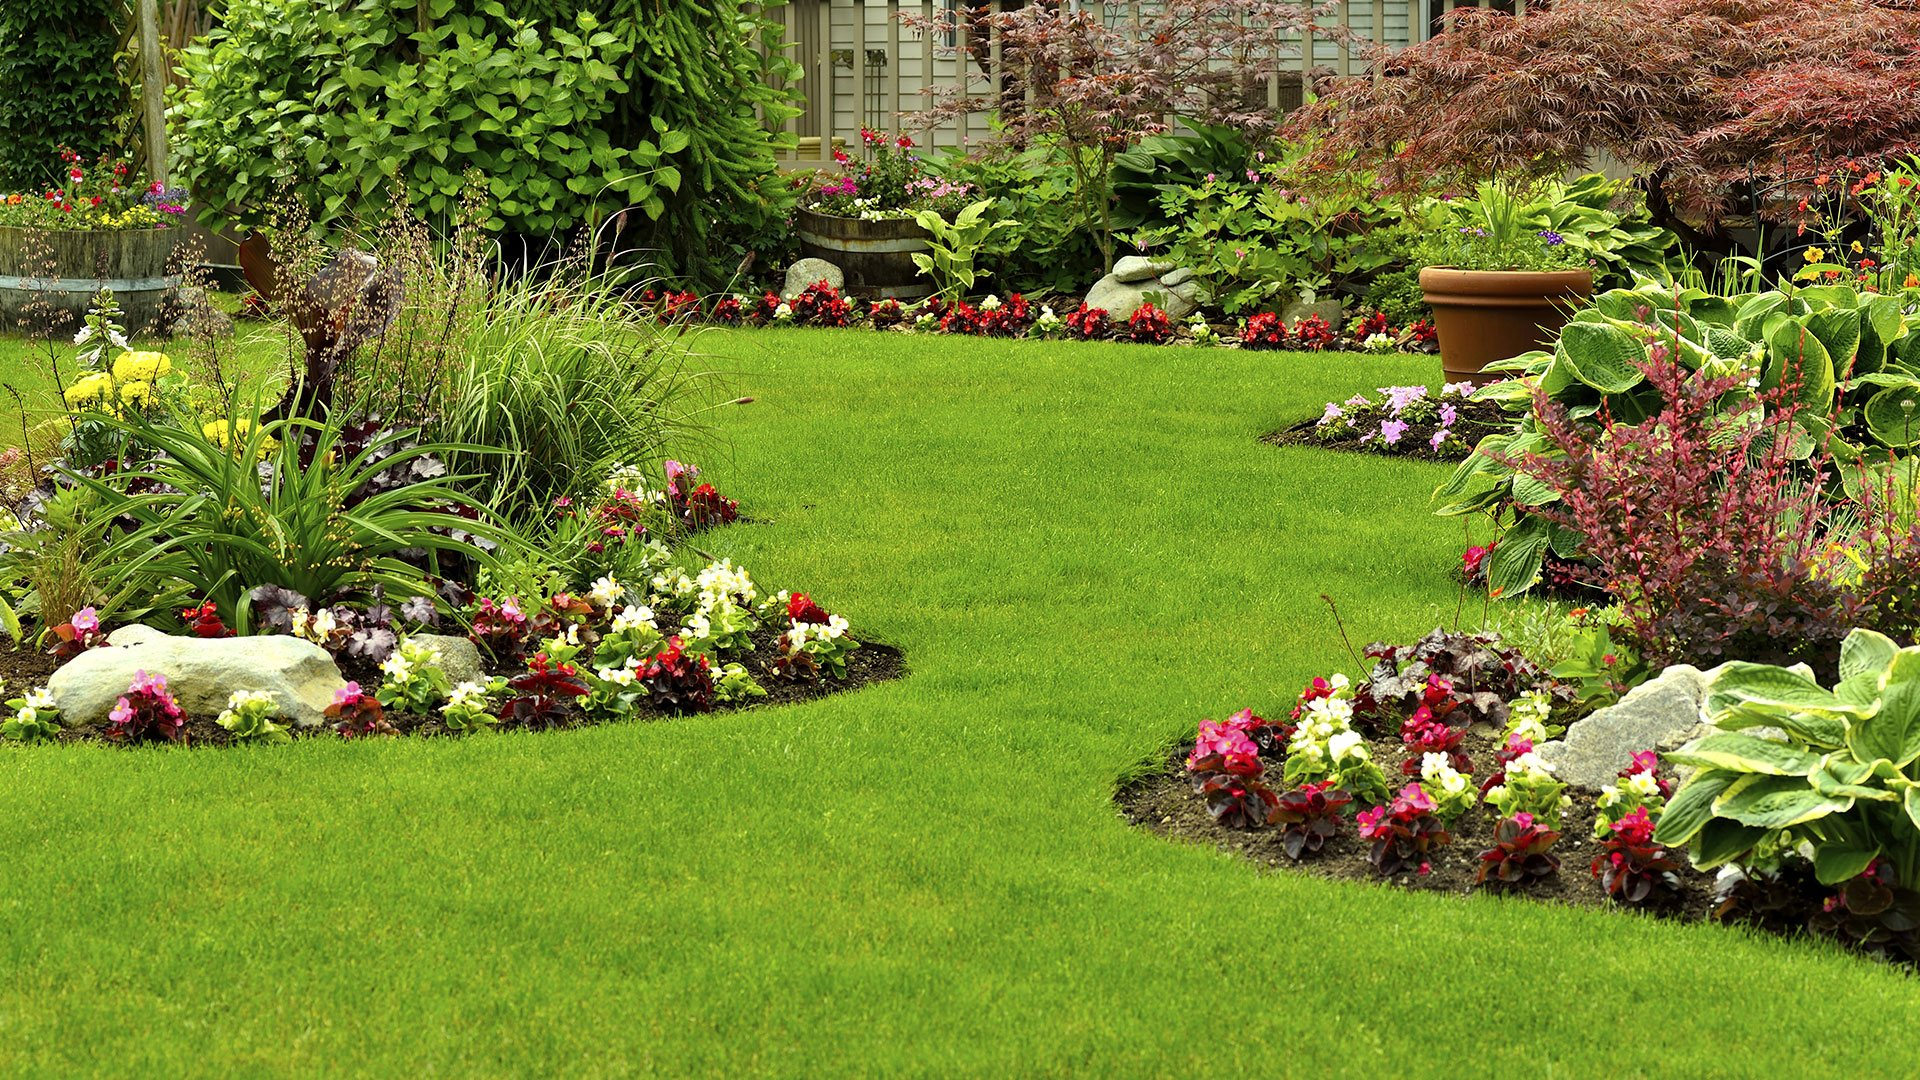 Delightful Lawns In Order | Quality Is Our Top Priority.